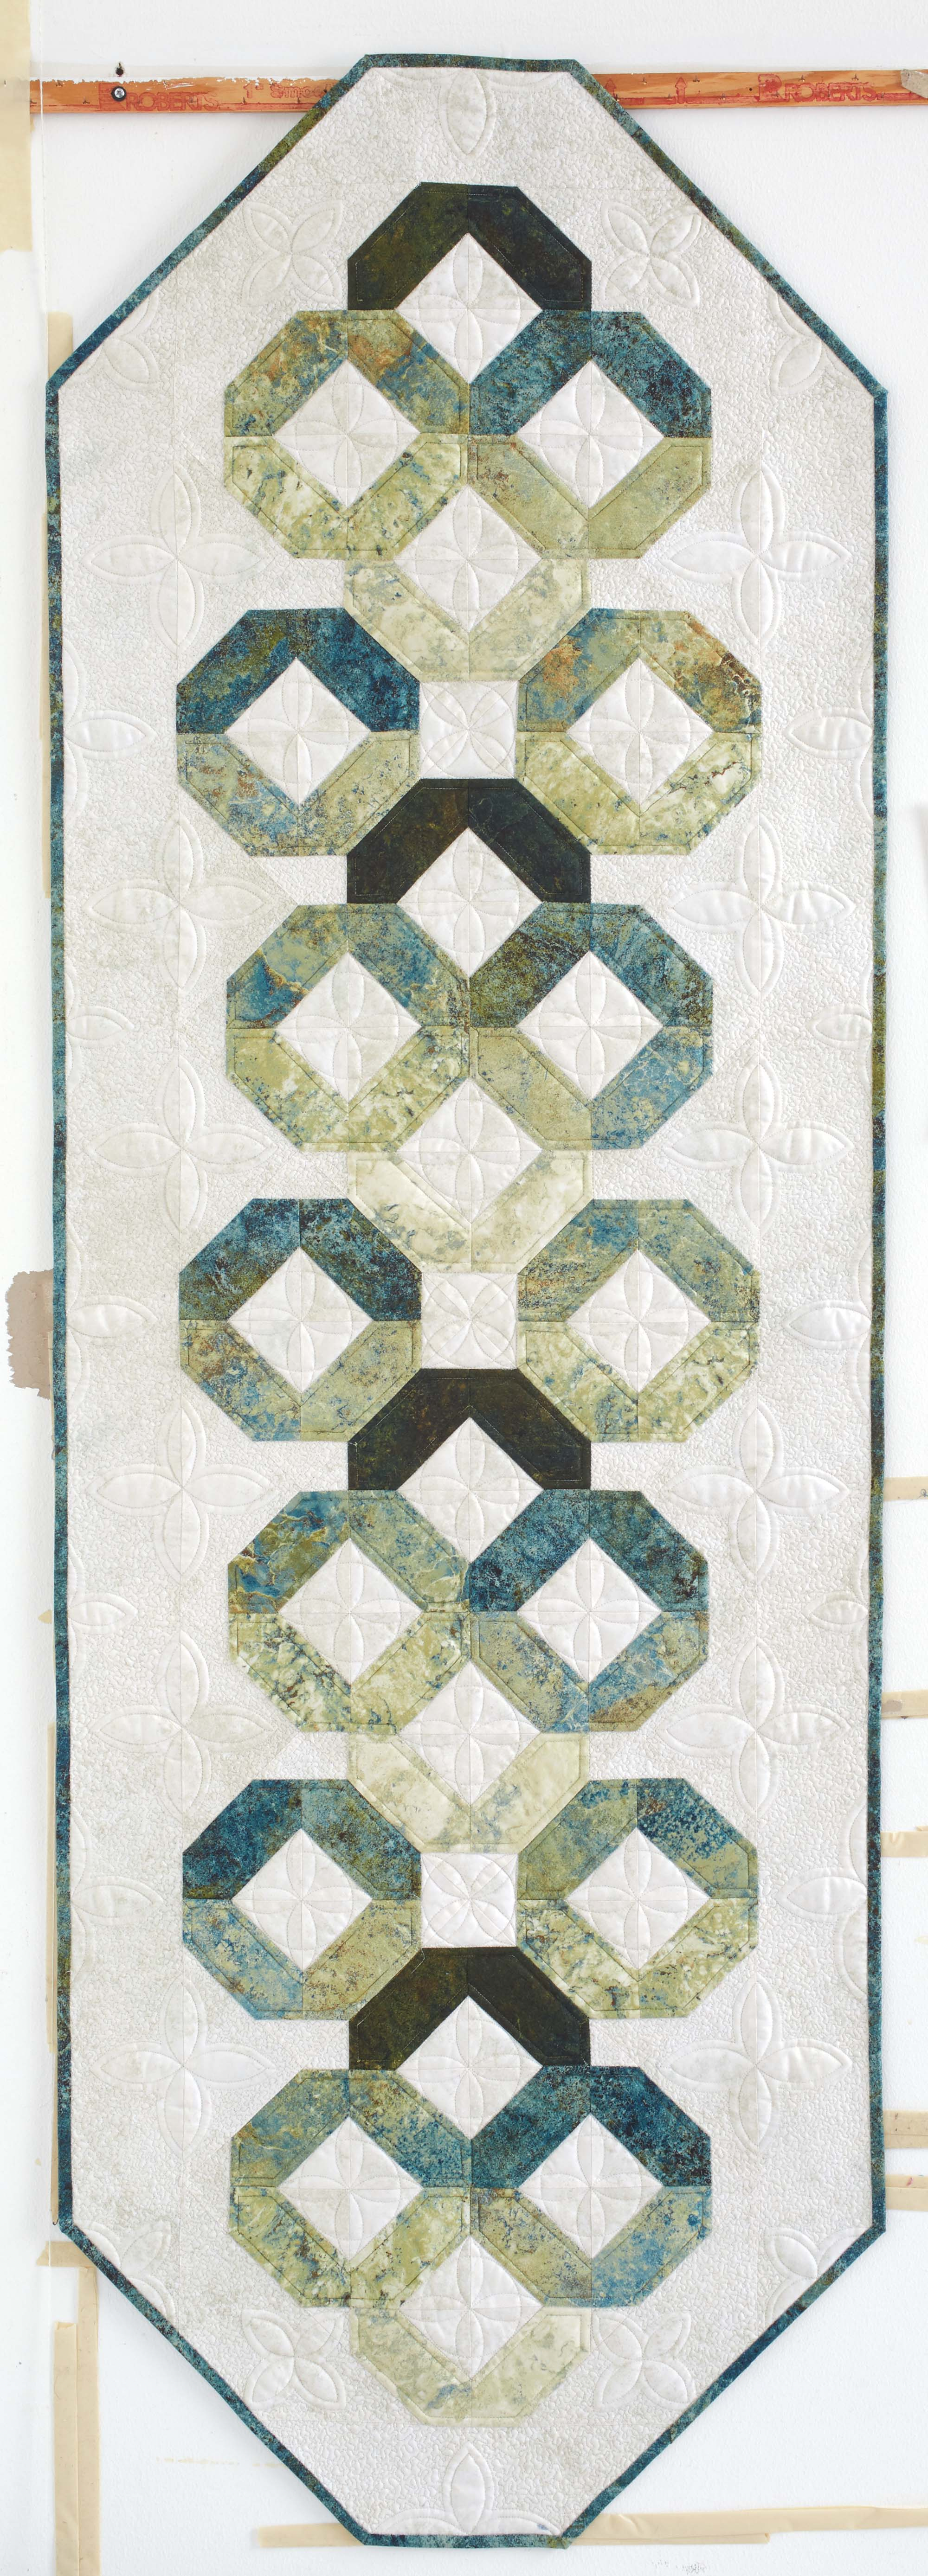 quilt-jaded-facets-flat